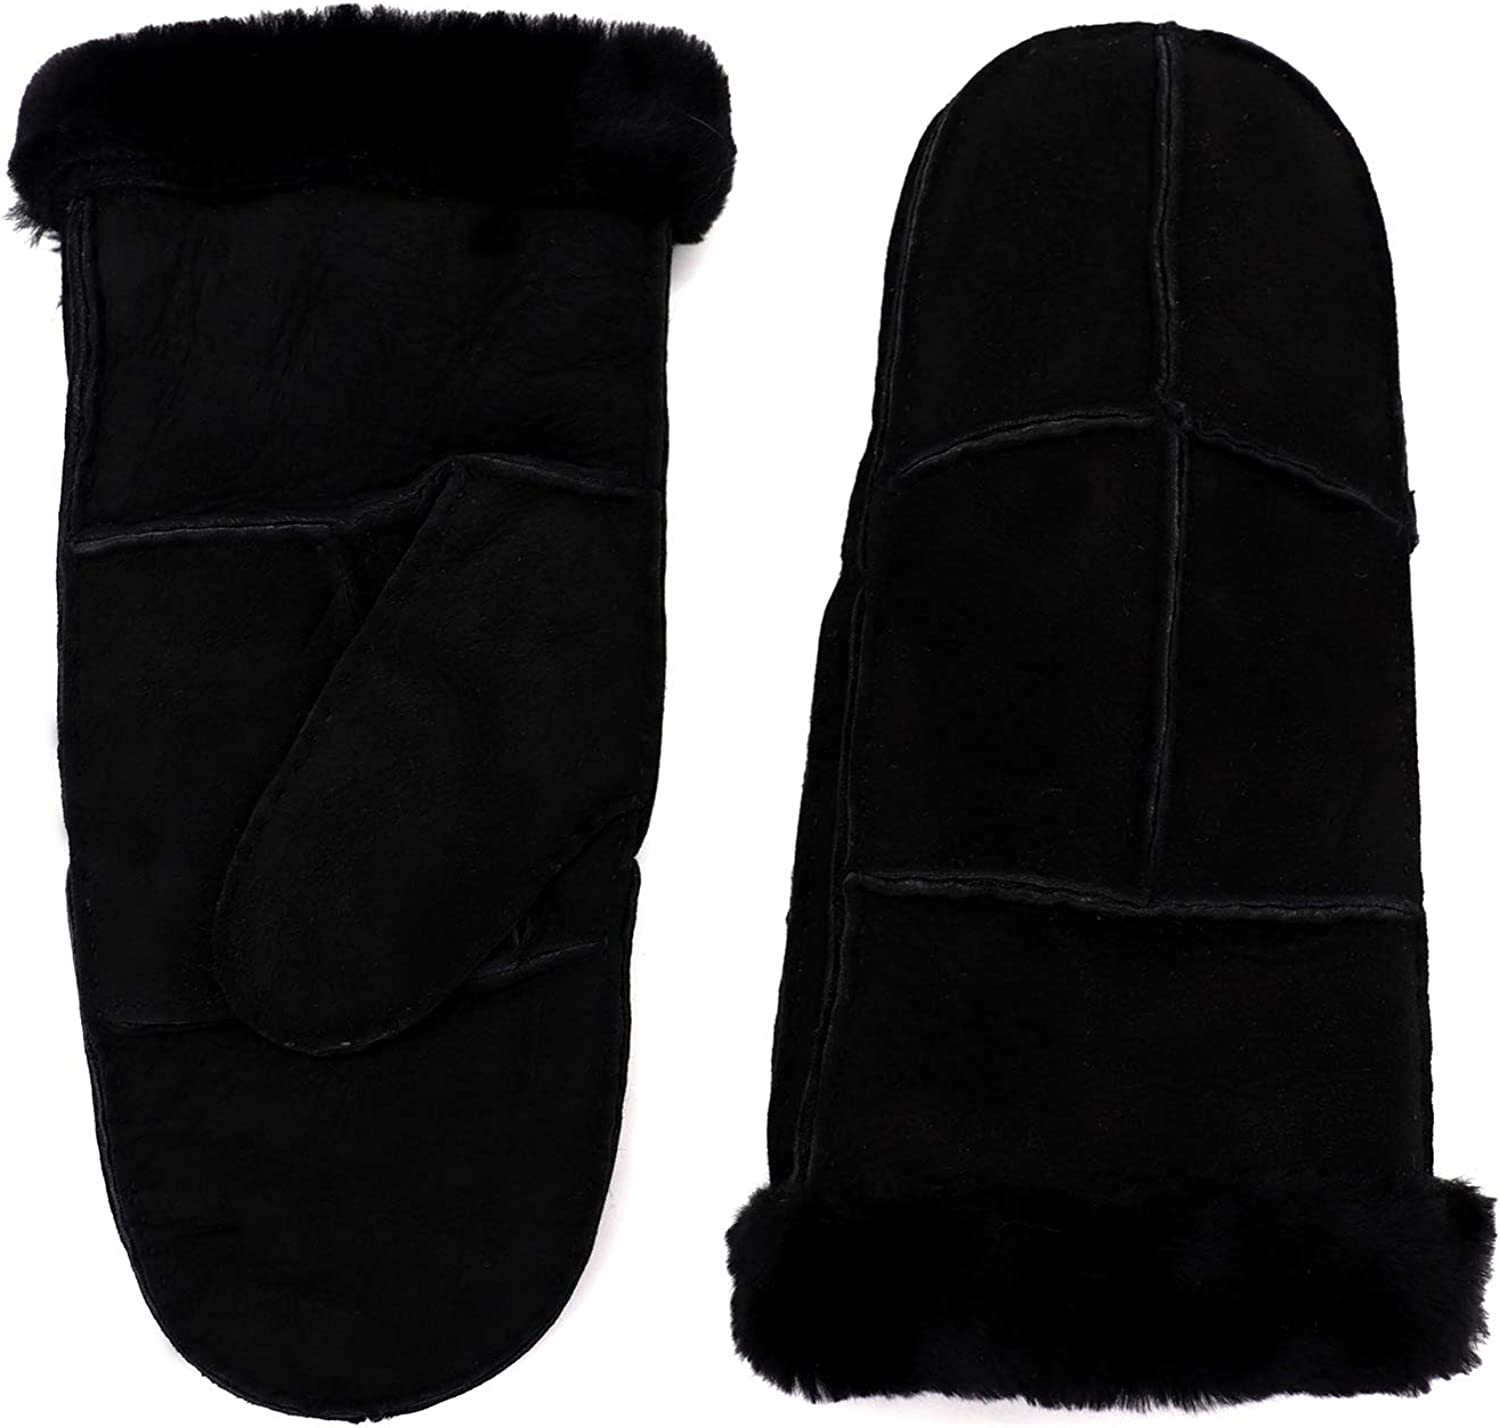 Surell Women's Sheepskin Shearling Mittens - Winter Gloves - Cold Weather Clothing (Black, Large)